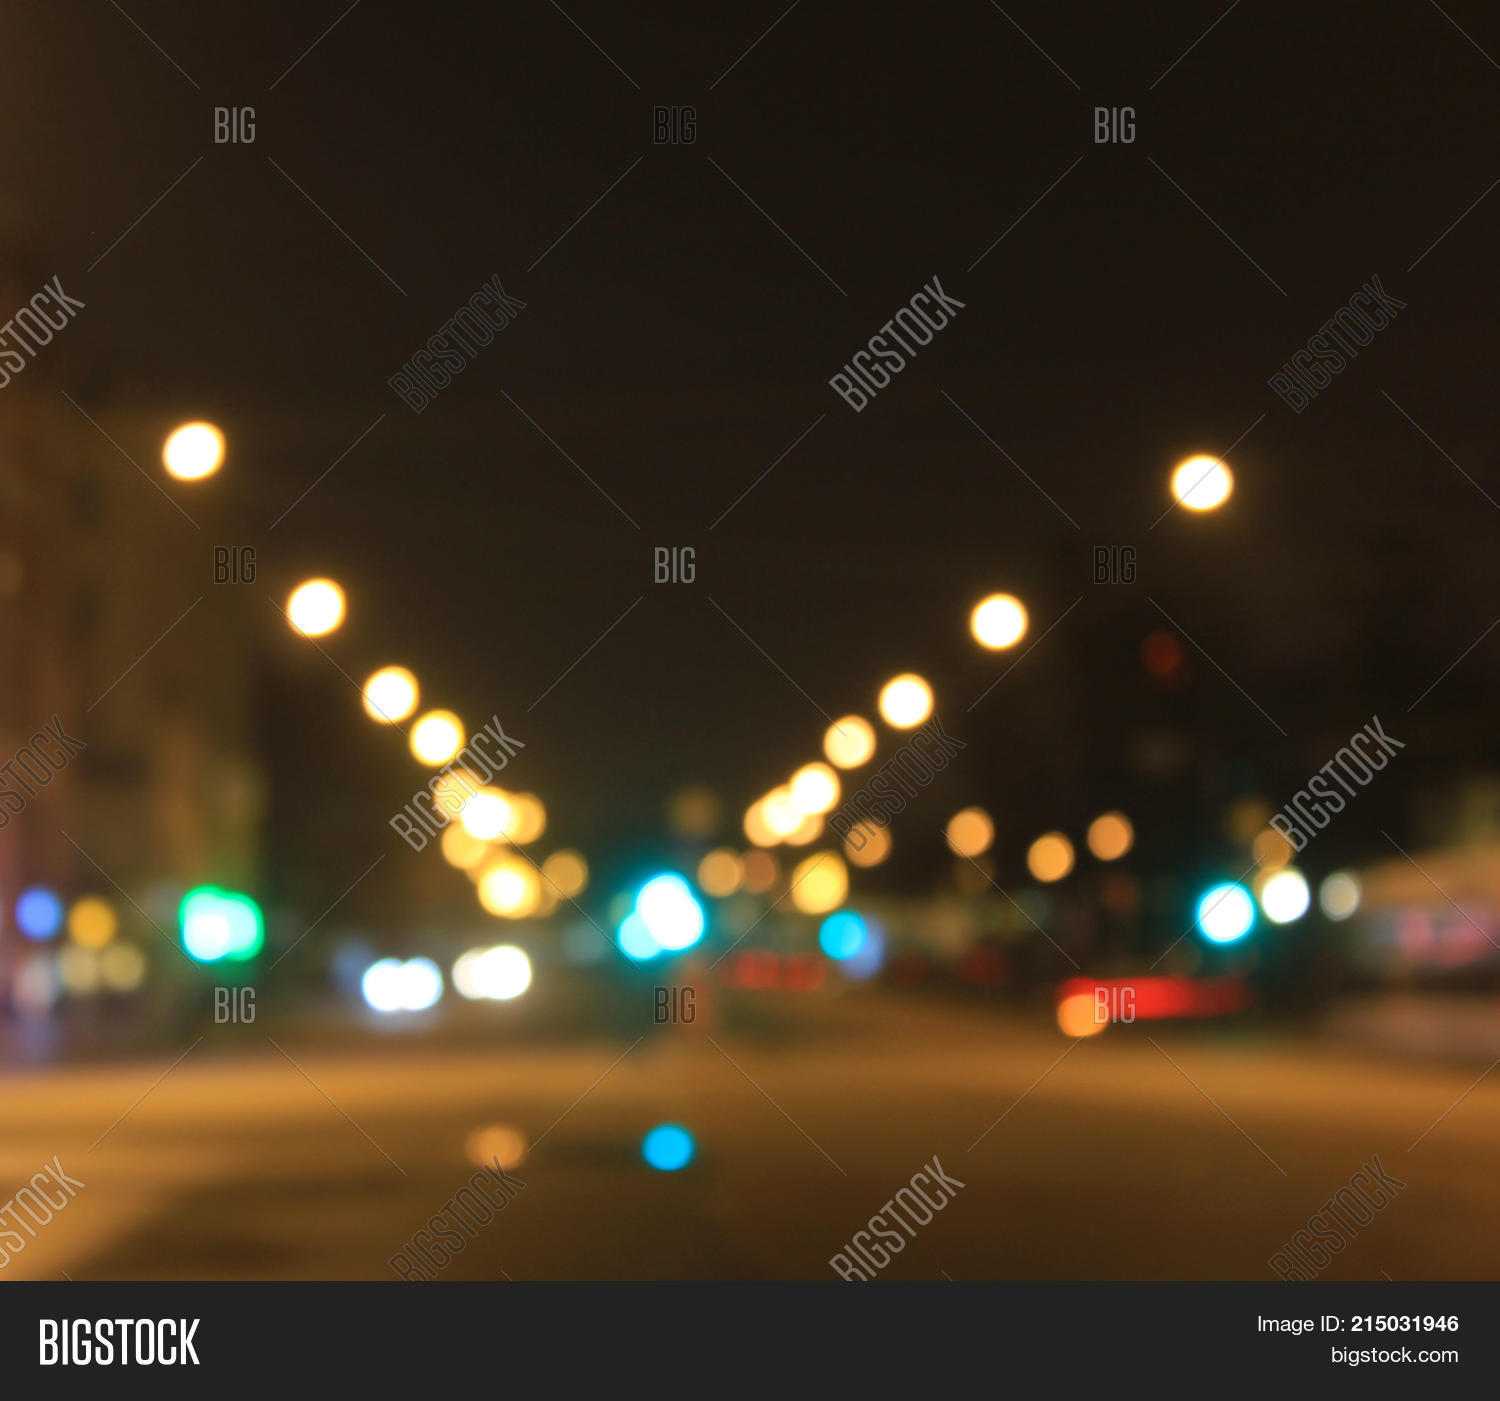 Night City Street Abstract Lights Background Bokeh Traffic And Lanterns Bulb Blurred Evening Dusk